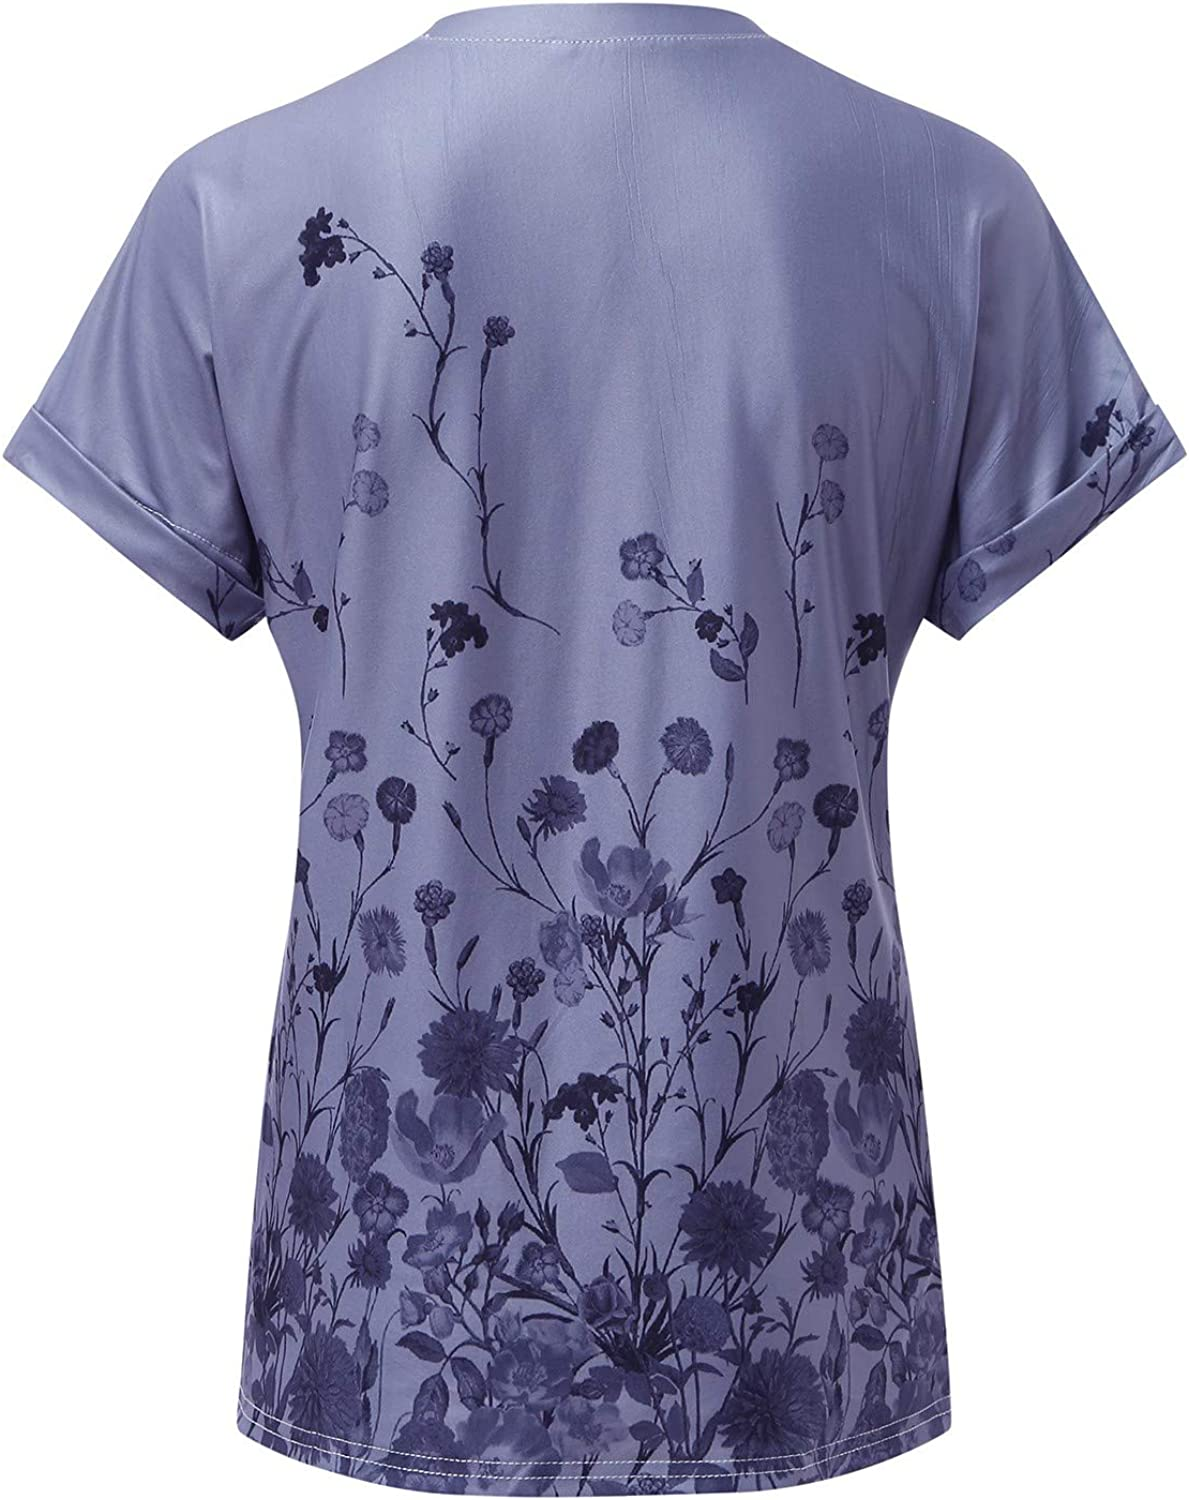 Vintage T-Shirts for Women Short Sleeve Floral Print Graphic Tees Casual O-Neck Tops